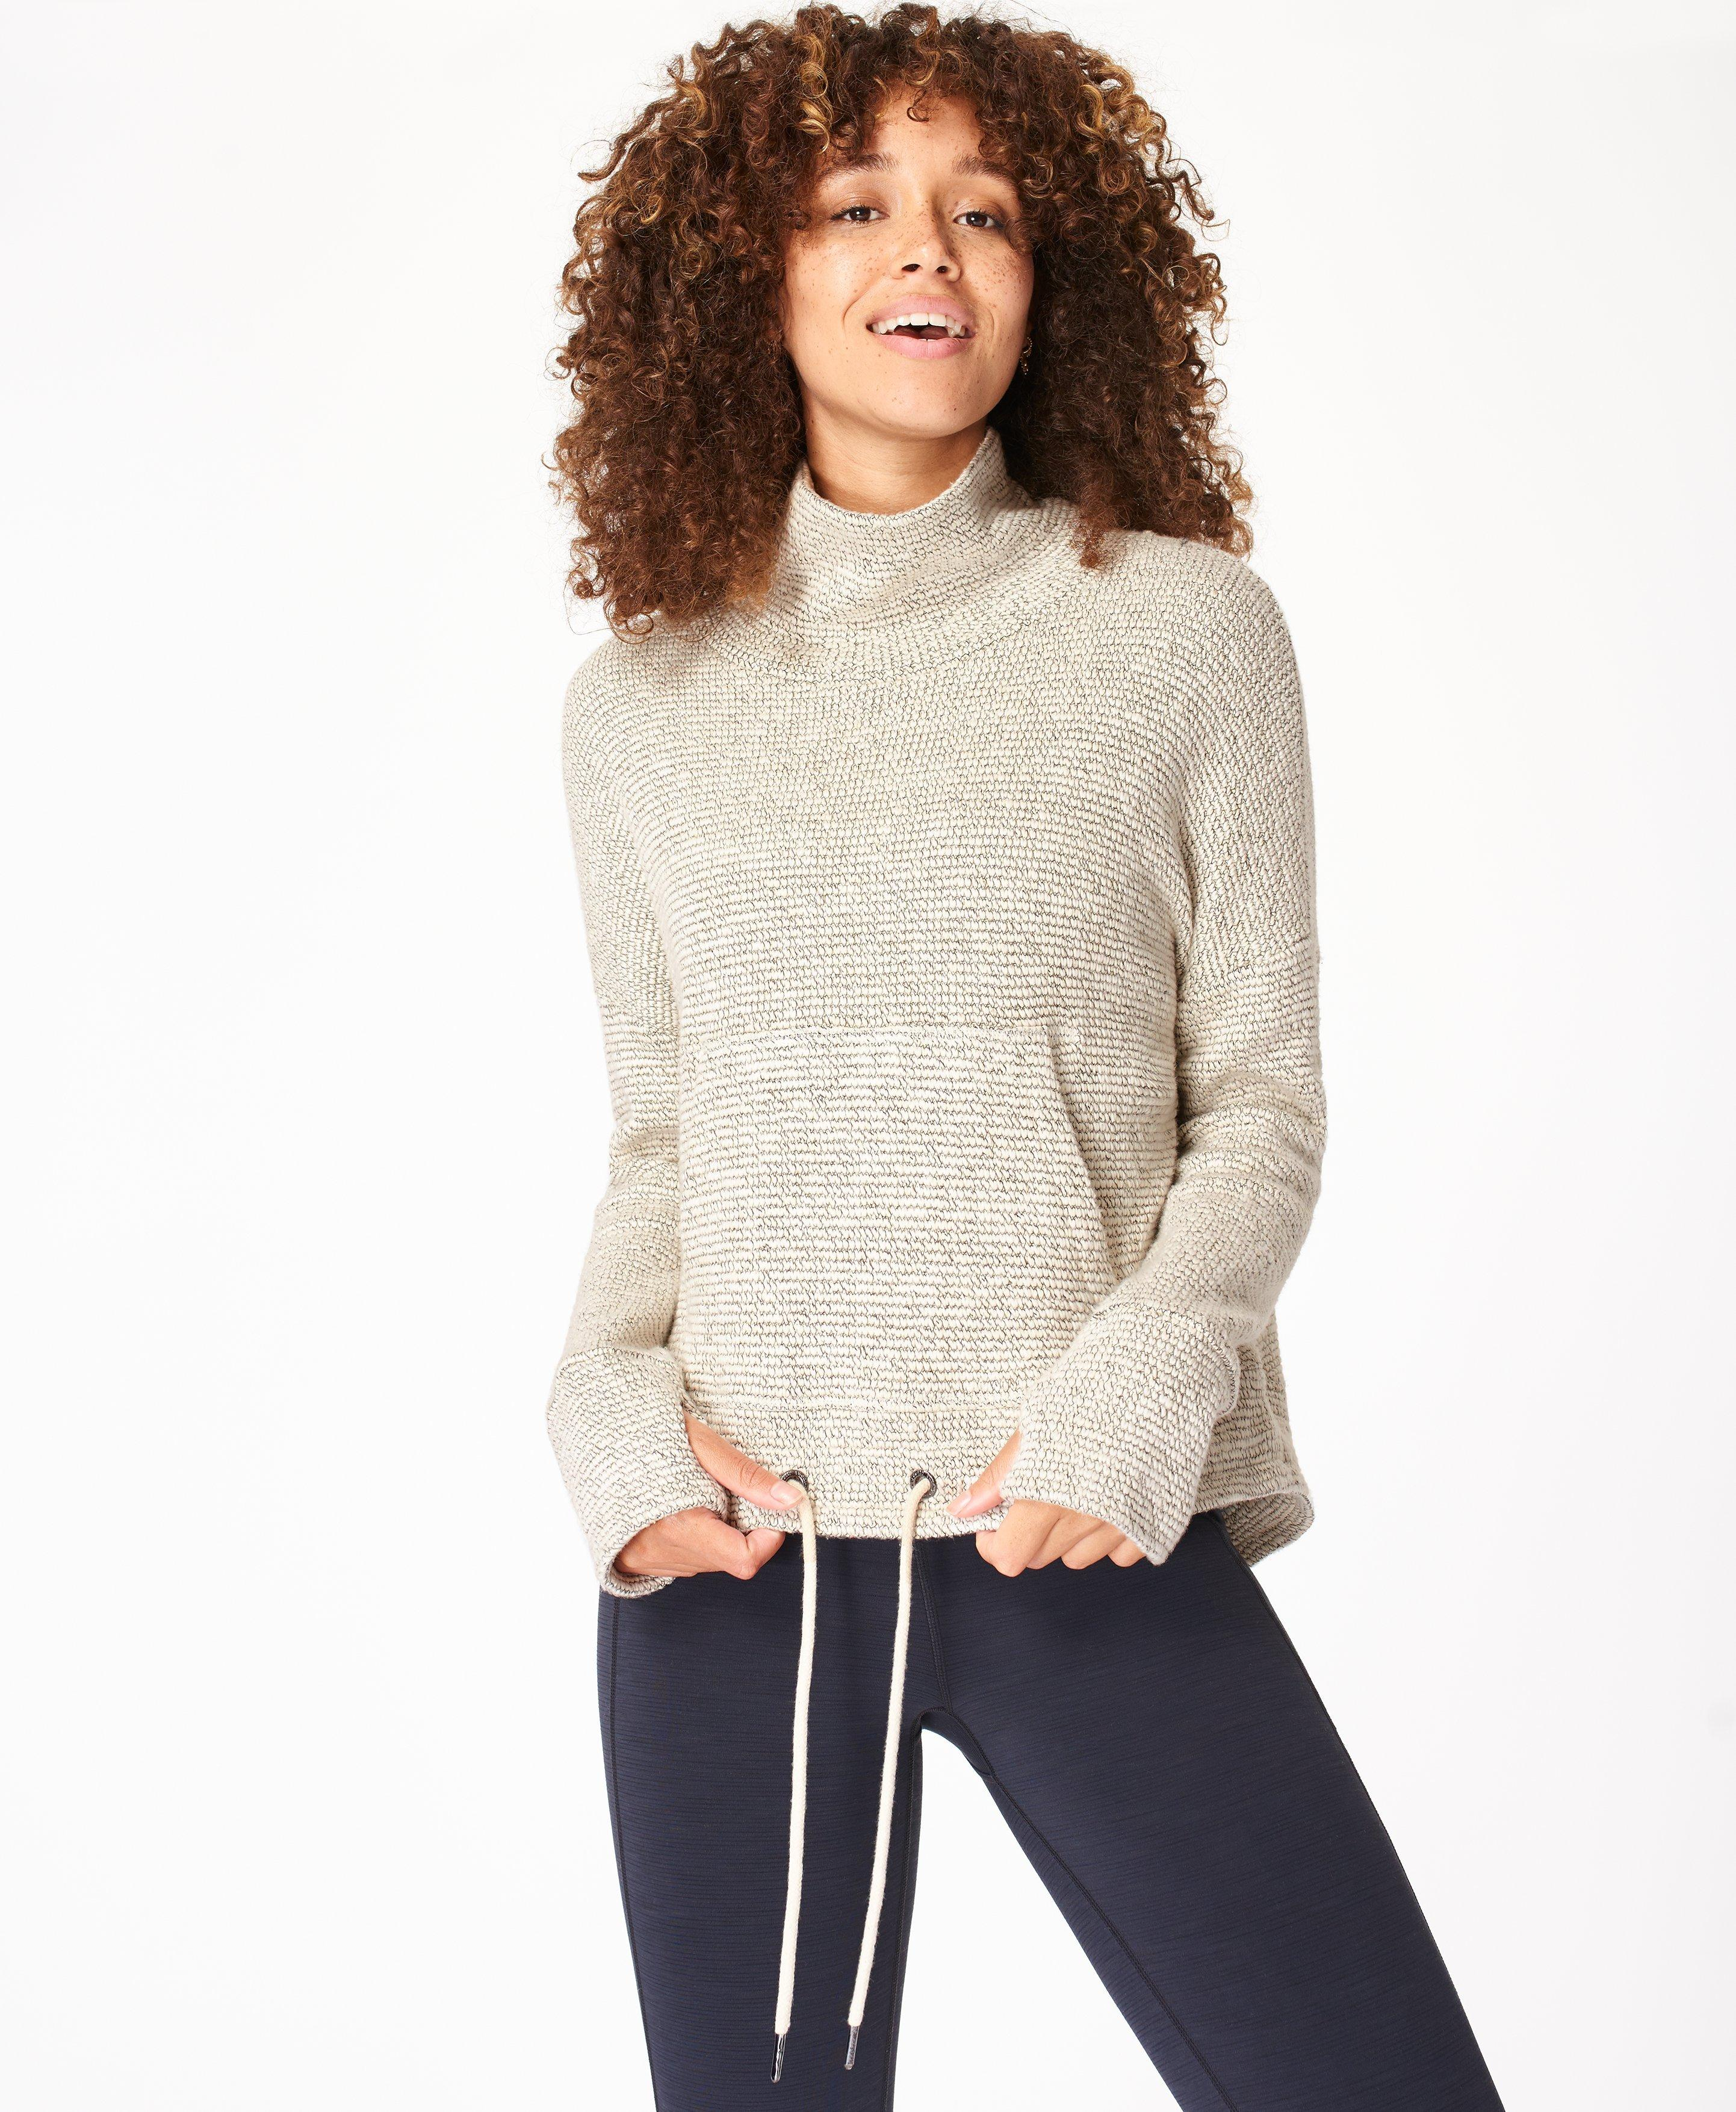 Style it up post-workout or to go out for brunch in this boucle sweatshirt, with a high neck and relaxed slouchy fit. With a front pocket, dropped back hem made for layering and a tie up front.